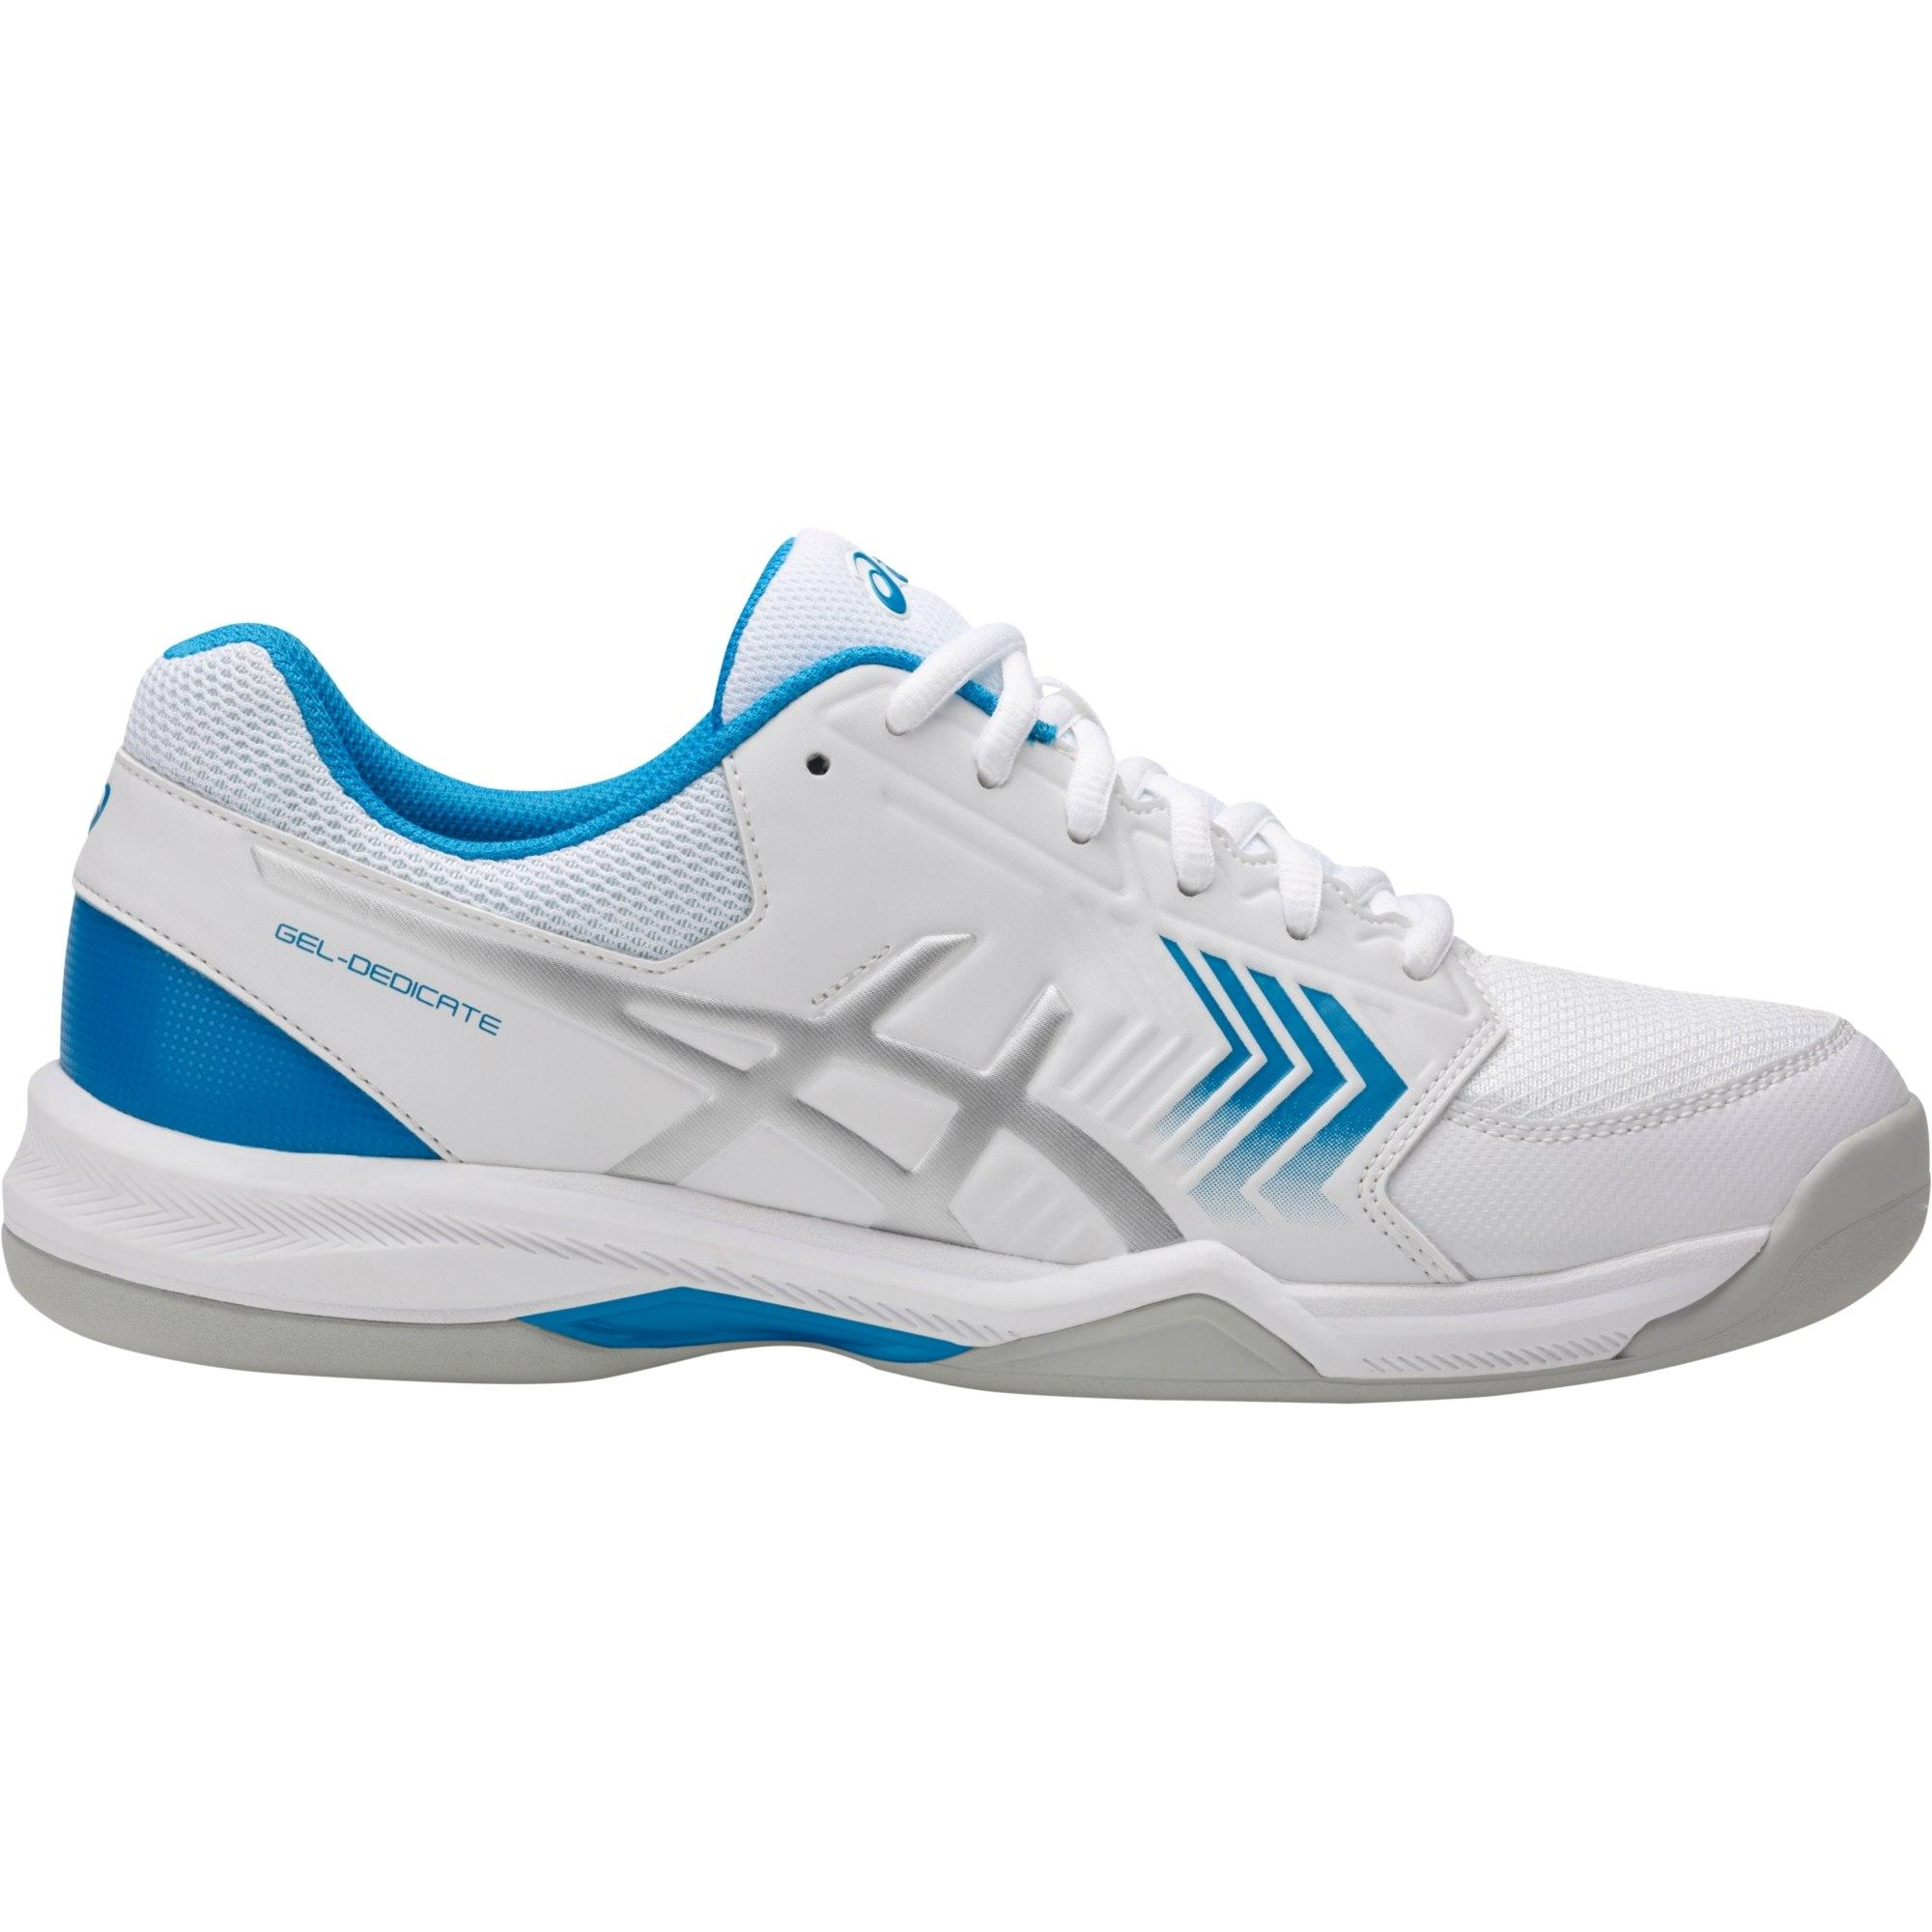 c20006eb2f78 Asics Mens GEL-Dedicate 5 Indoor Carpet Tennis Shoes - White Blue -  Tennisnuts.com